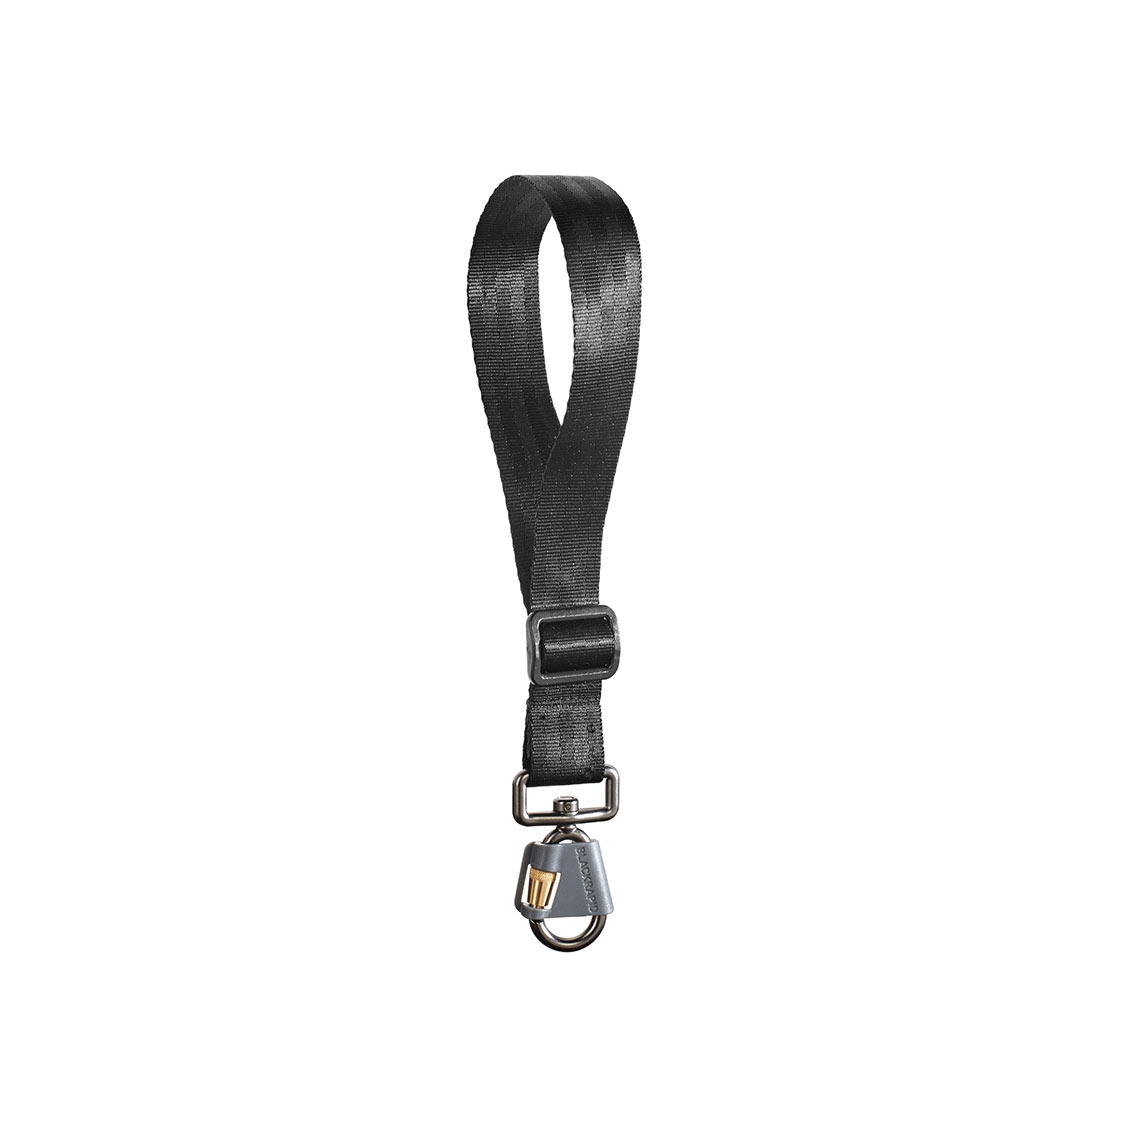 BlackRapid Wrist Strap Breathe